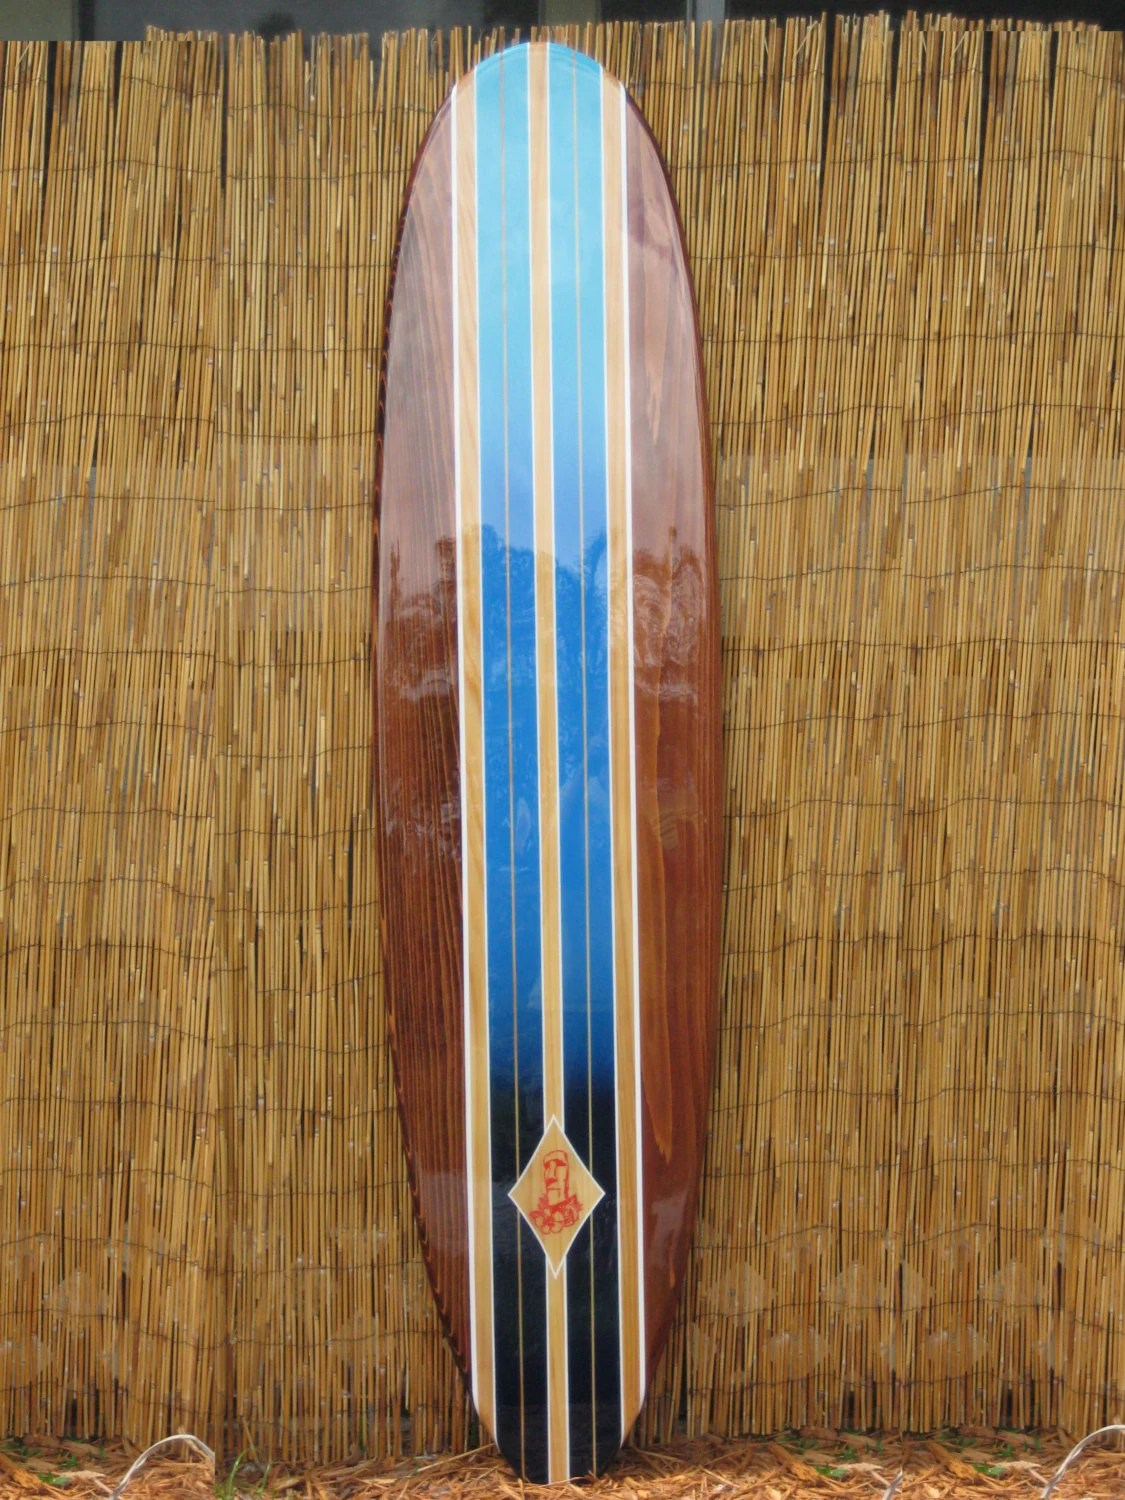 Best Decorative Wooden Surfboard Wall Art For A Hotel Restaurant This Month